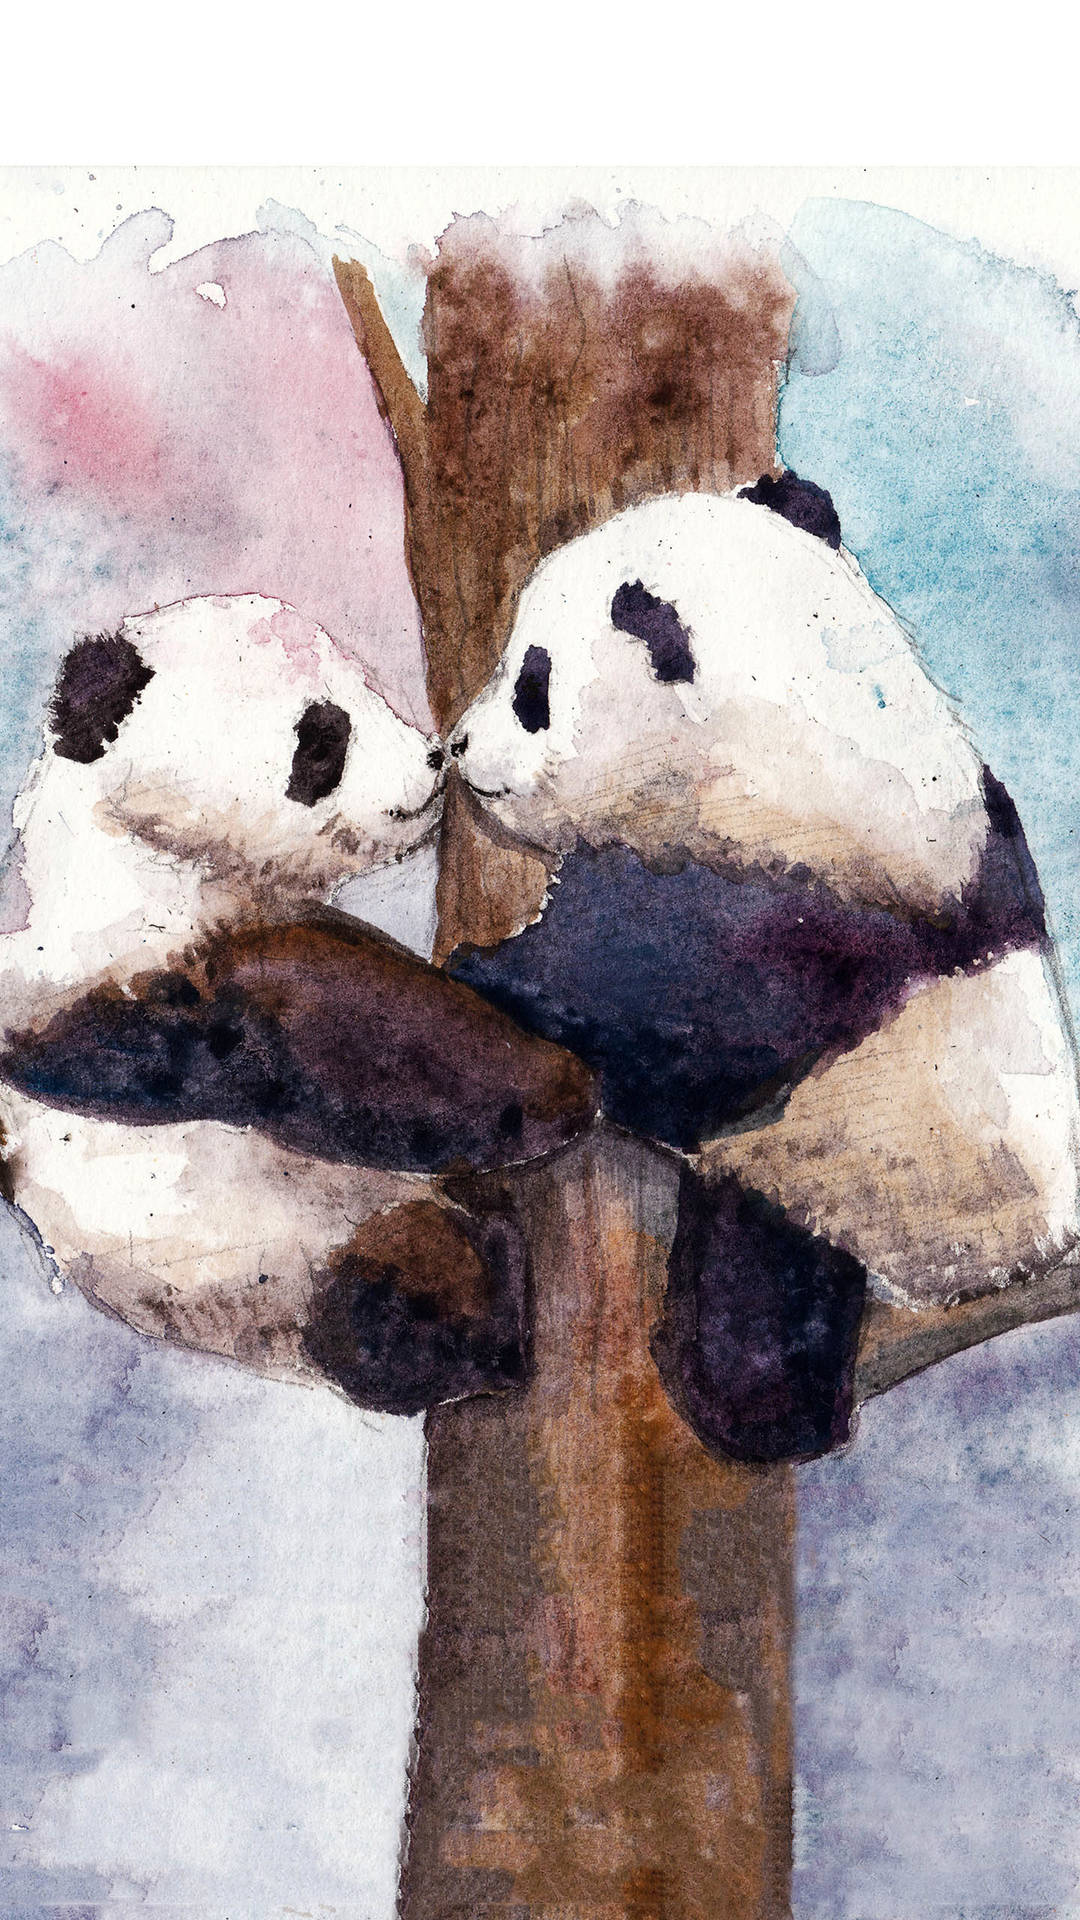 Cute Pandas Wallpapers 11 Cute Panda Wallpapers For Iphone With 1920x1080